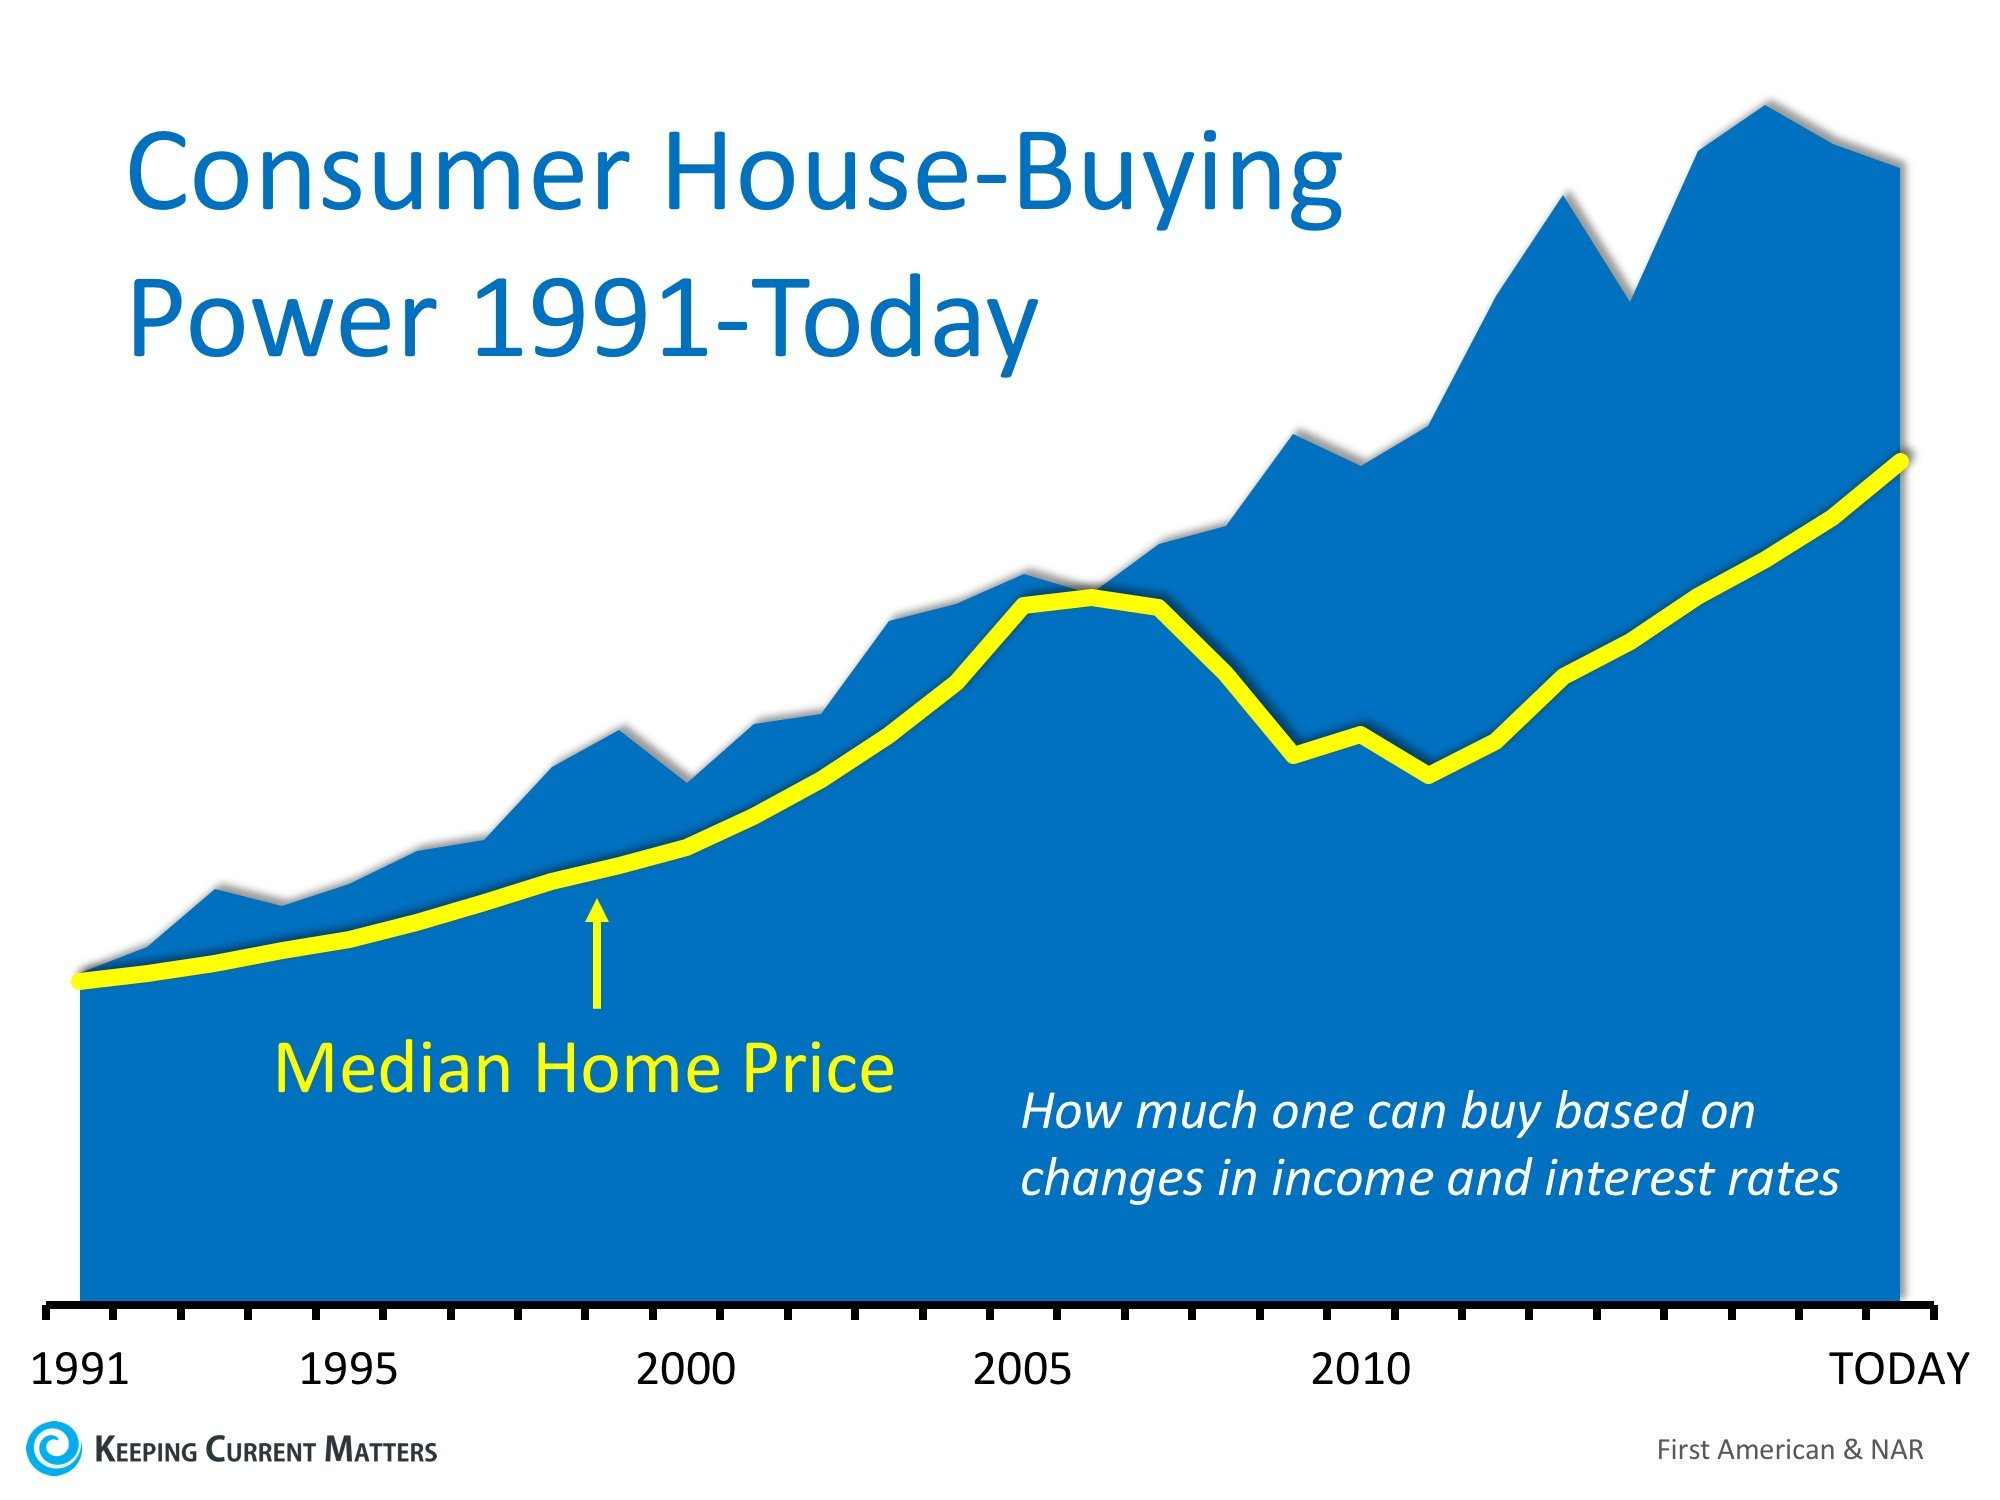 House-Buying Power at Near-Historic Levels | Keeping Current Matters